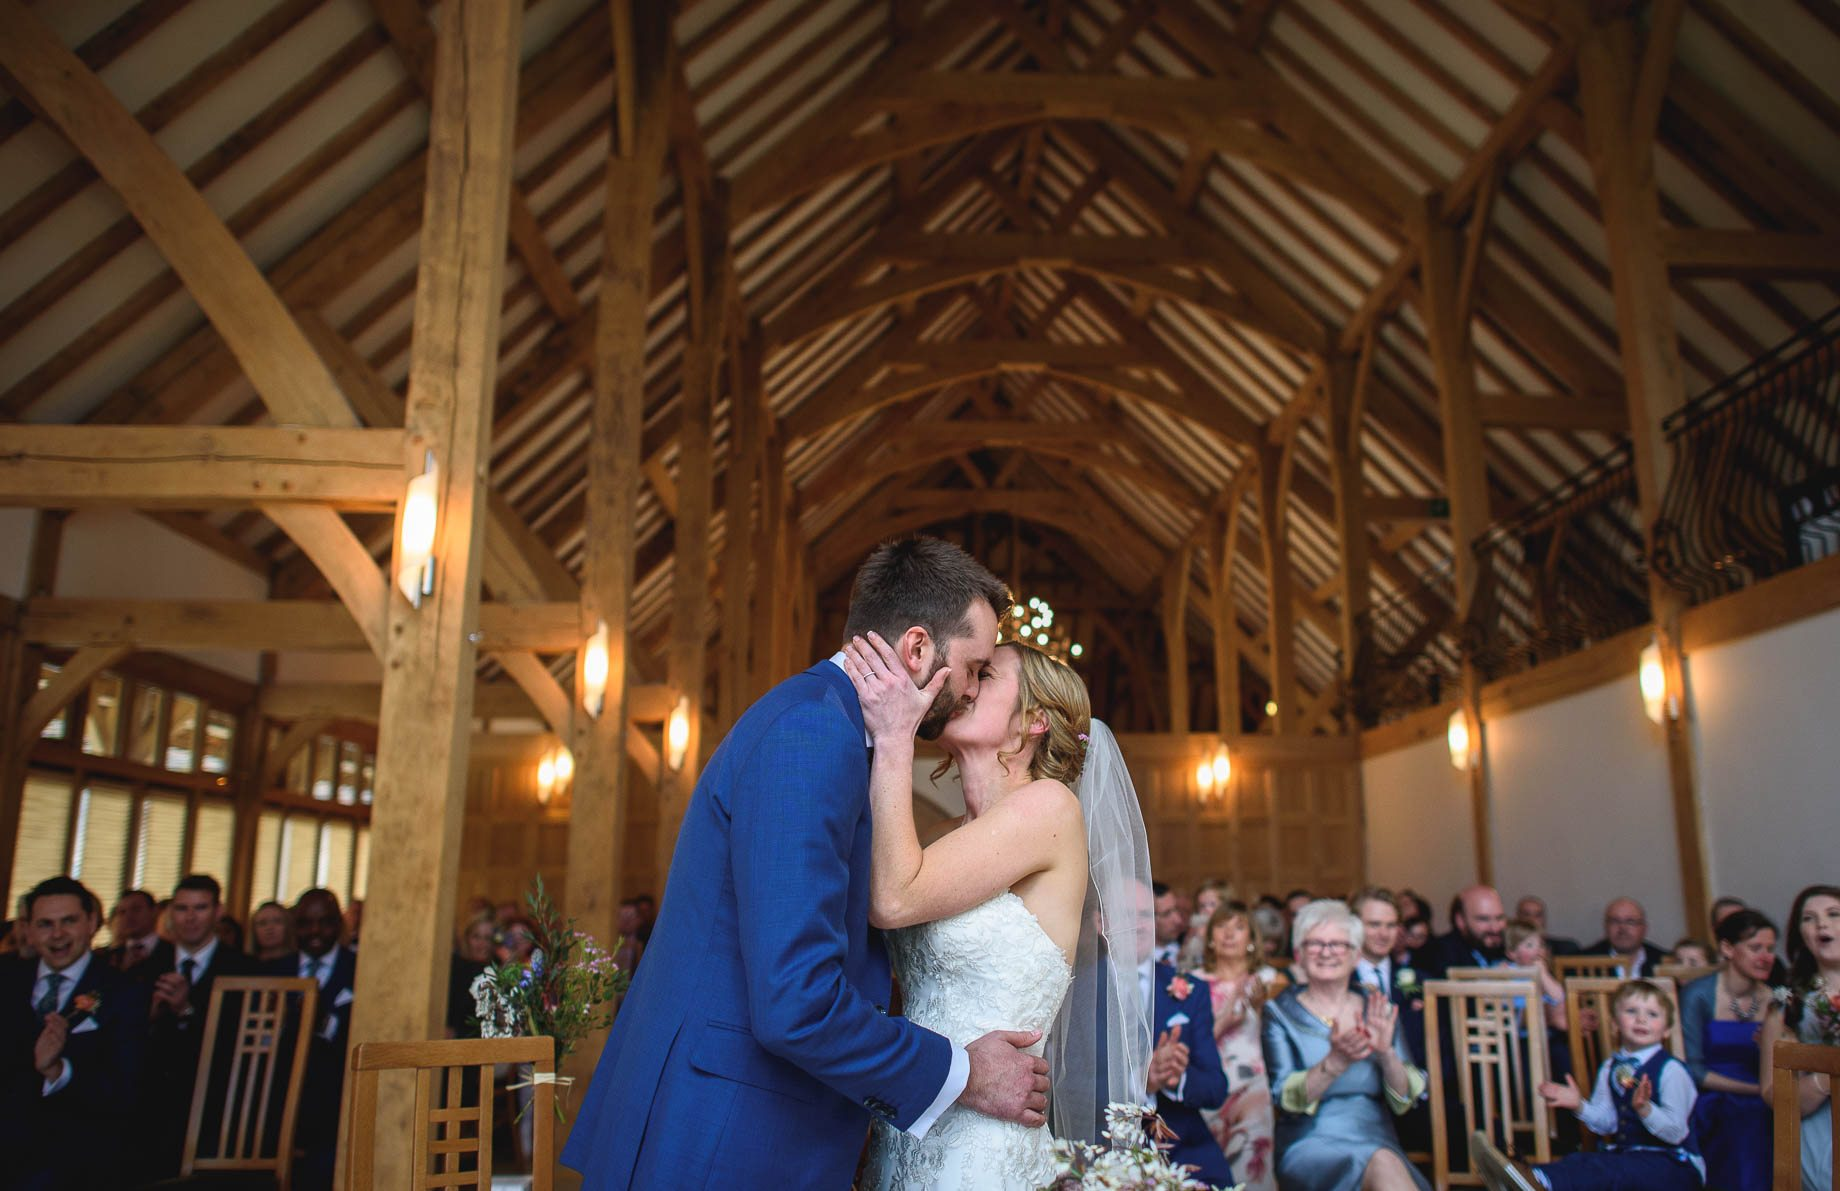 Rivervale Barn wedding photography by Guy Collier - Claire and Simon (59 of 133)